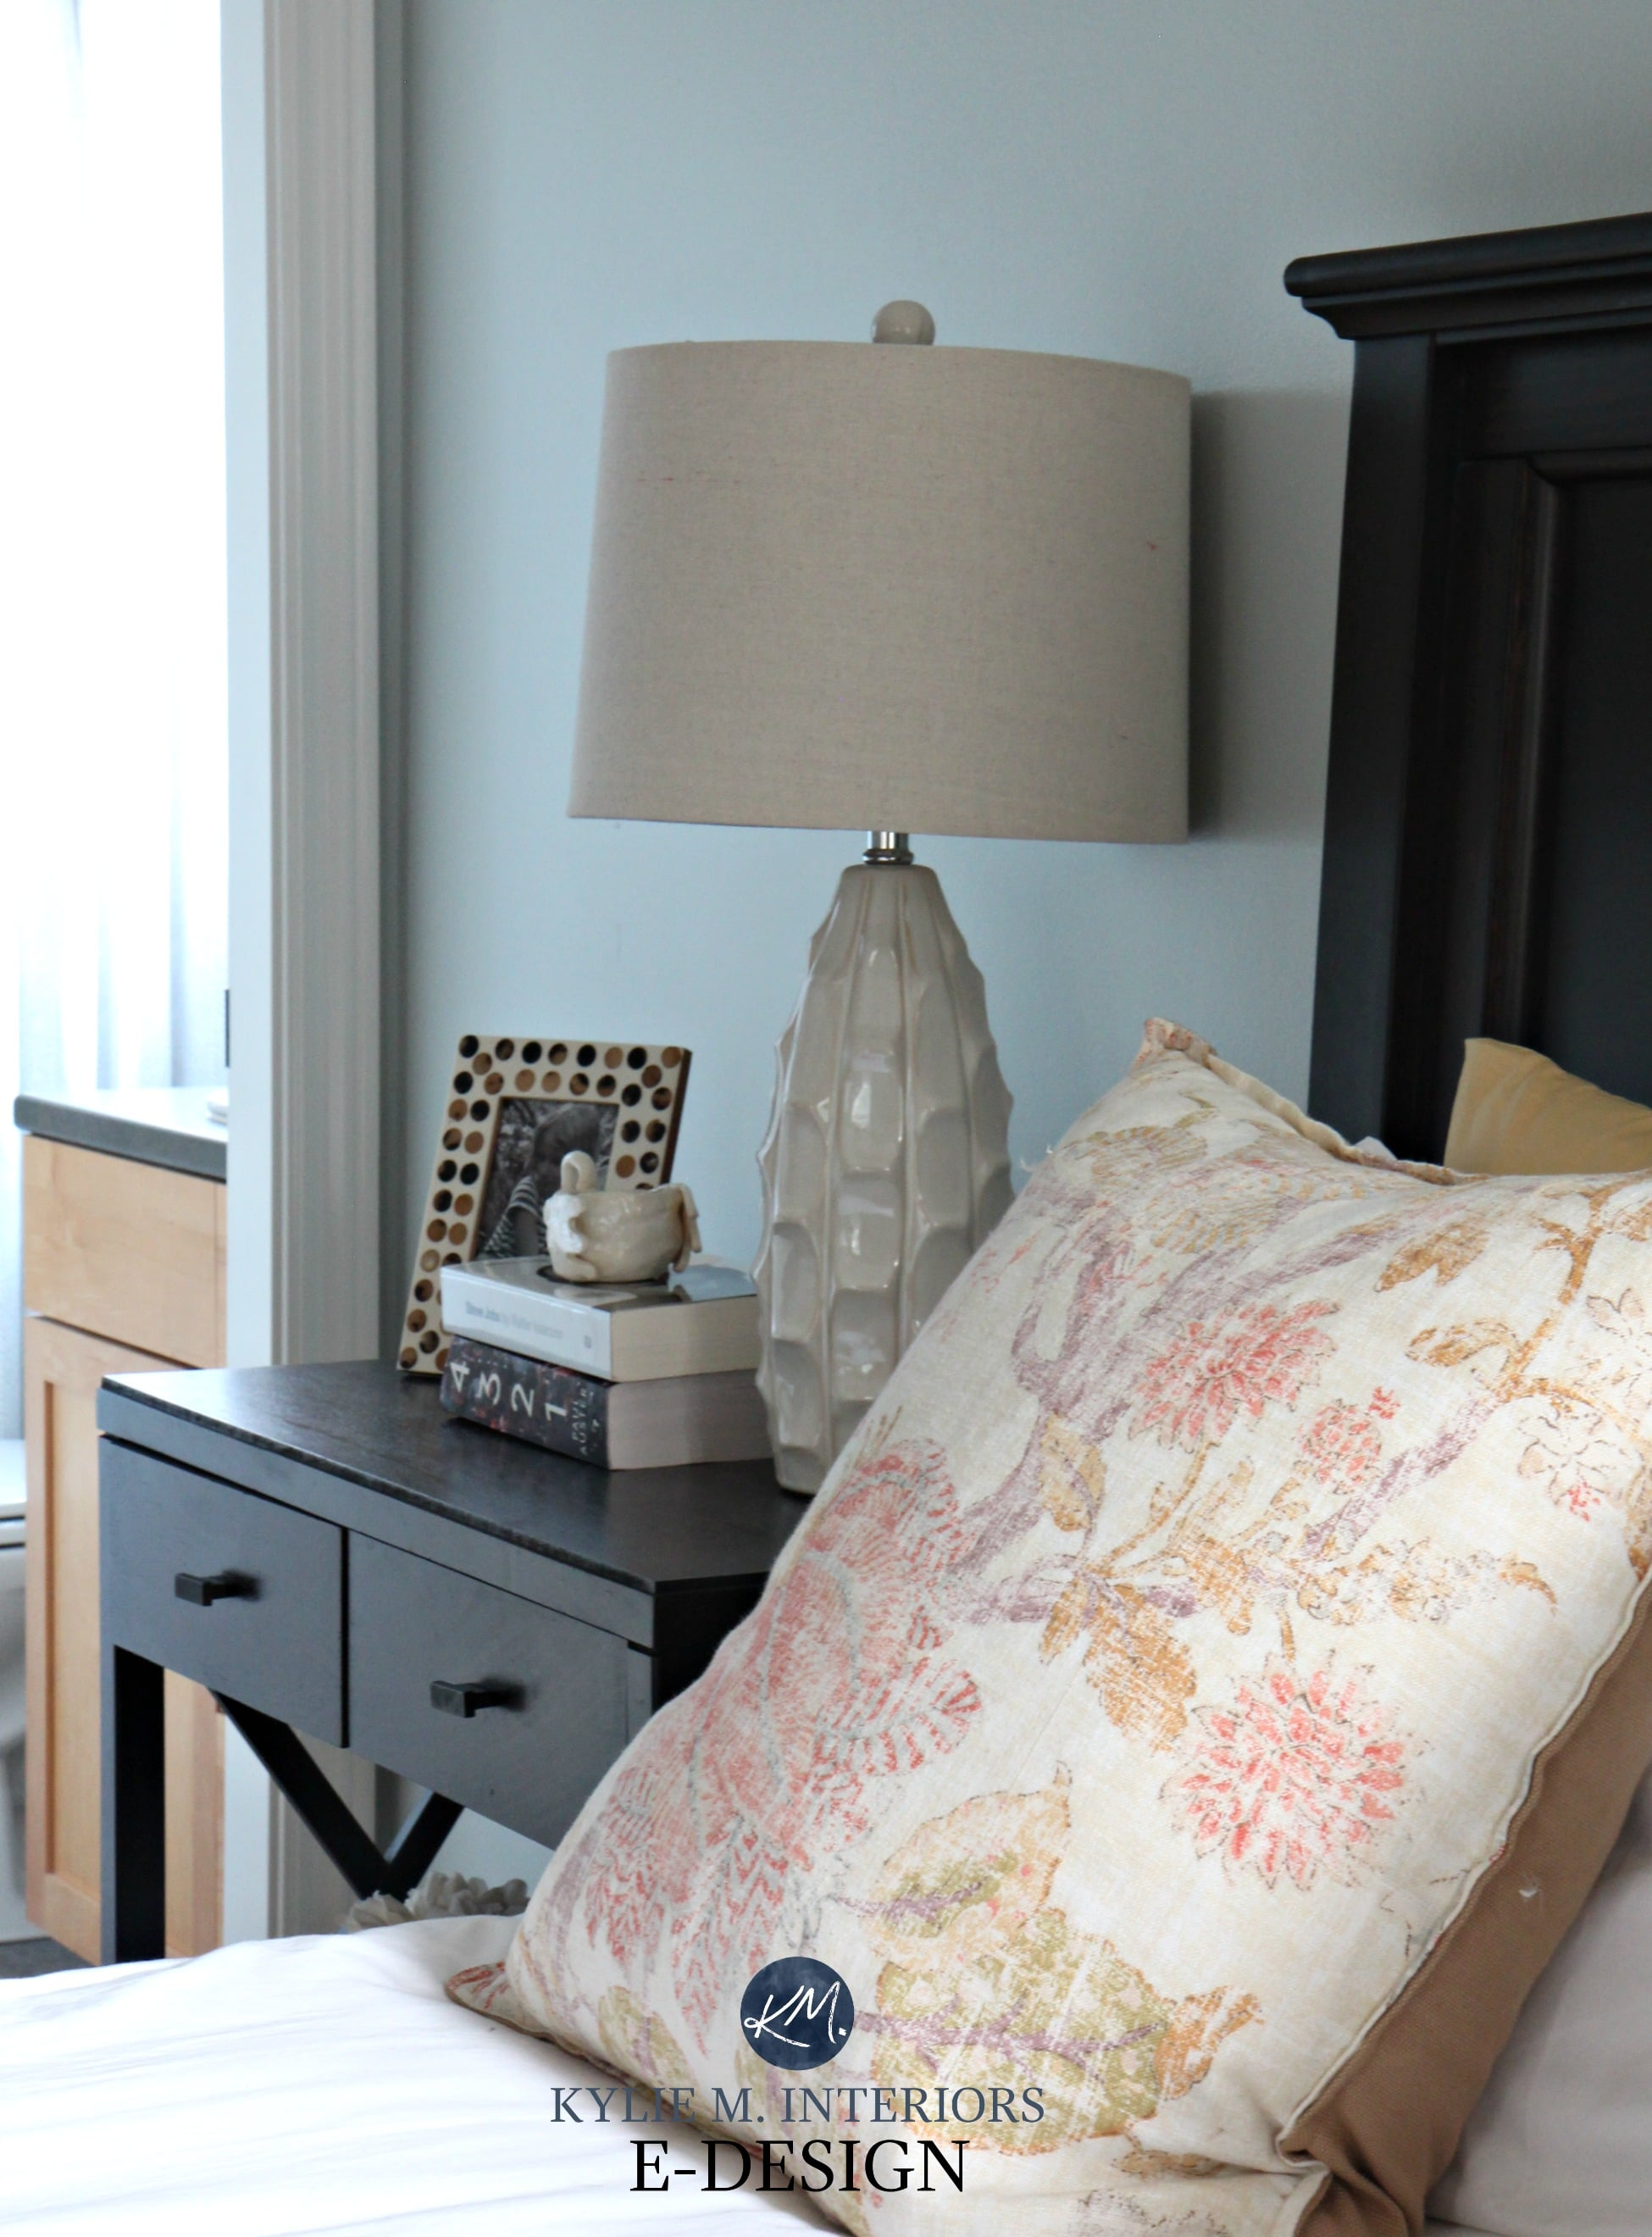 Sherwin williams silver strand gray paint colour review for Sherwin williams interior design